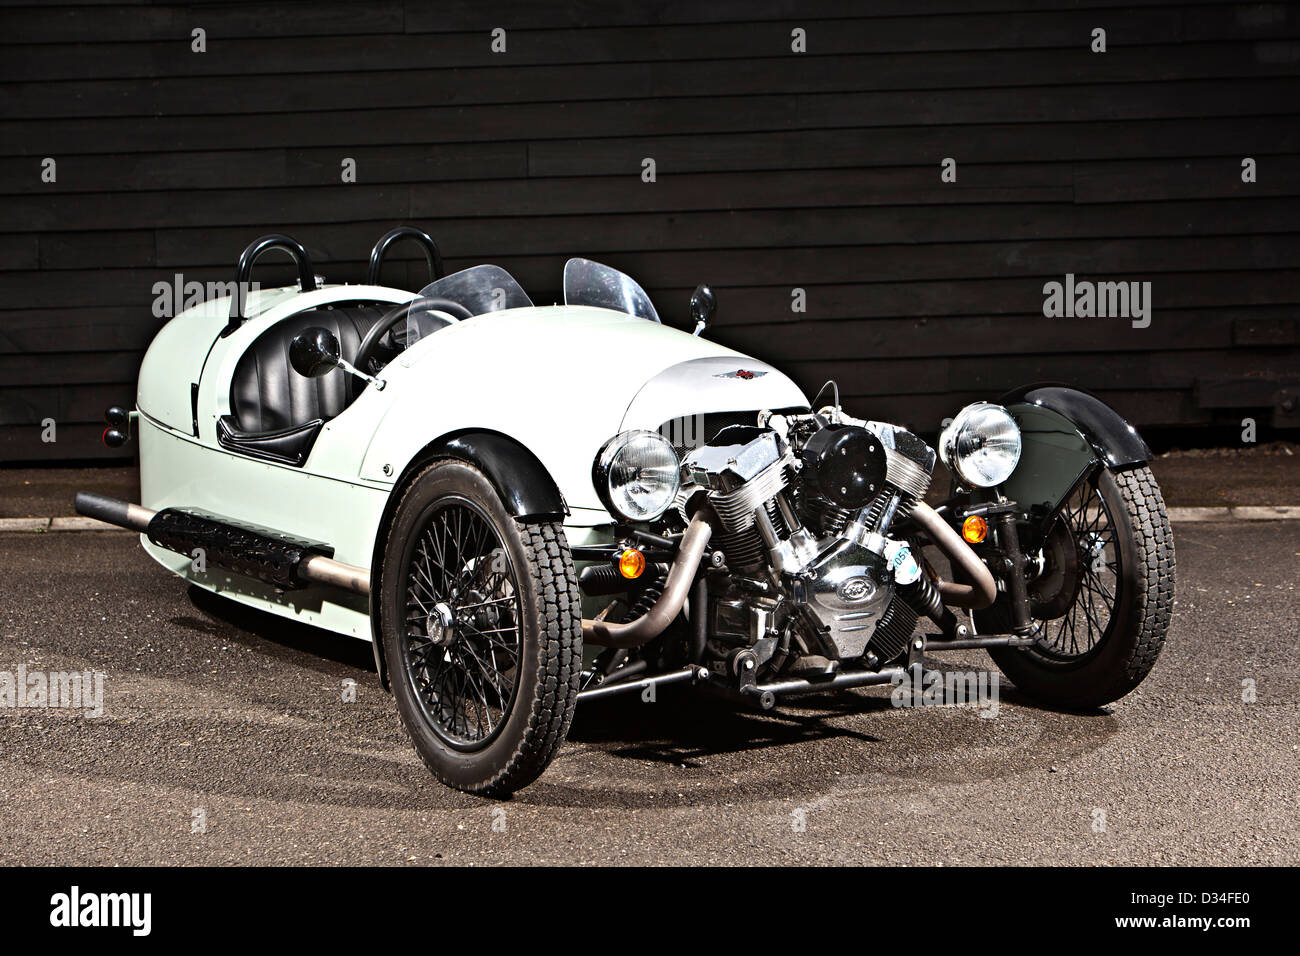 morgan 3 wheeler open topped unique sports car winchester uk 19 09 stock photo royalty free. Black Bedroom Furniture Sets. Home Design Ideas